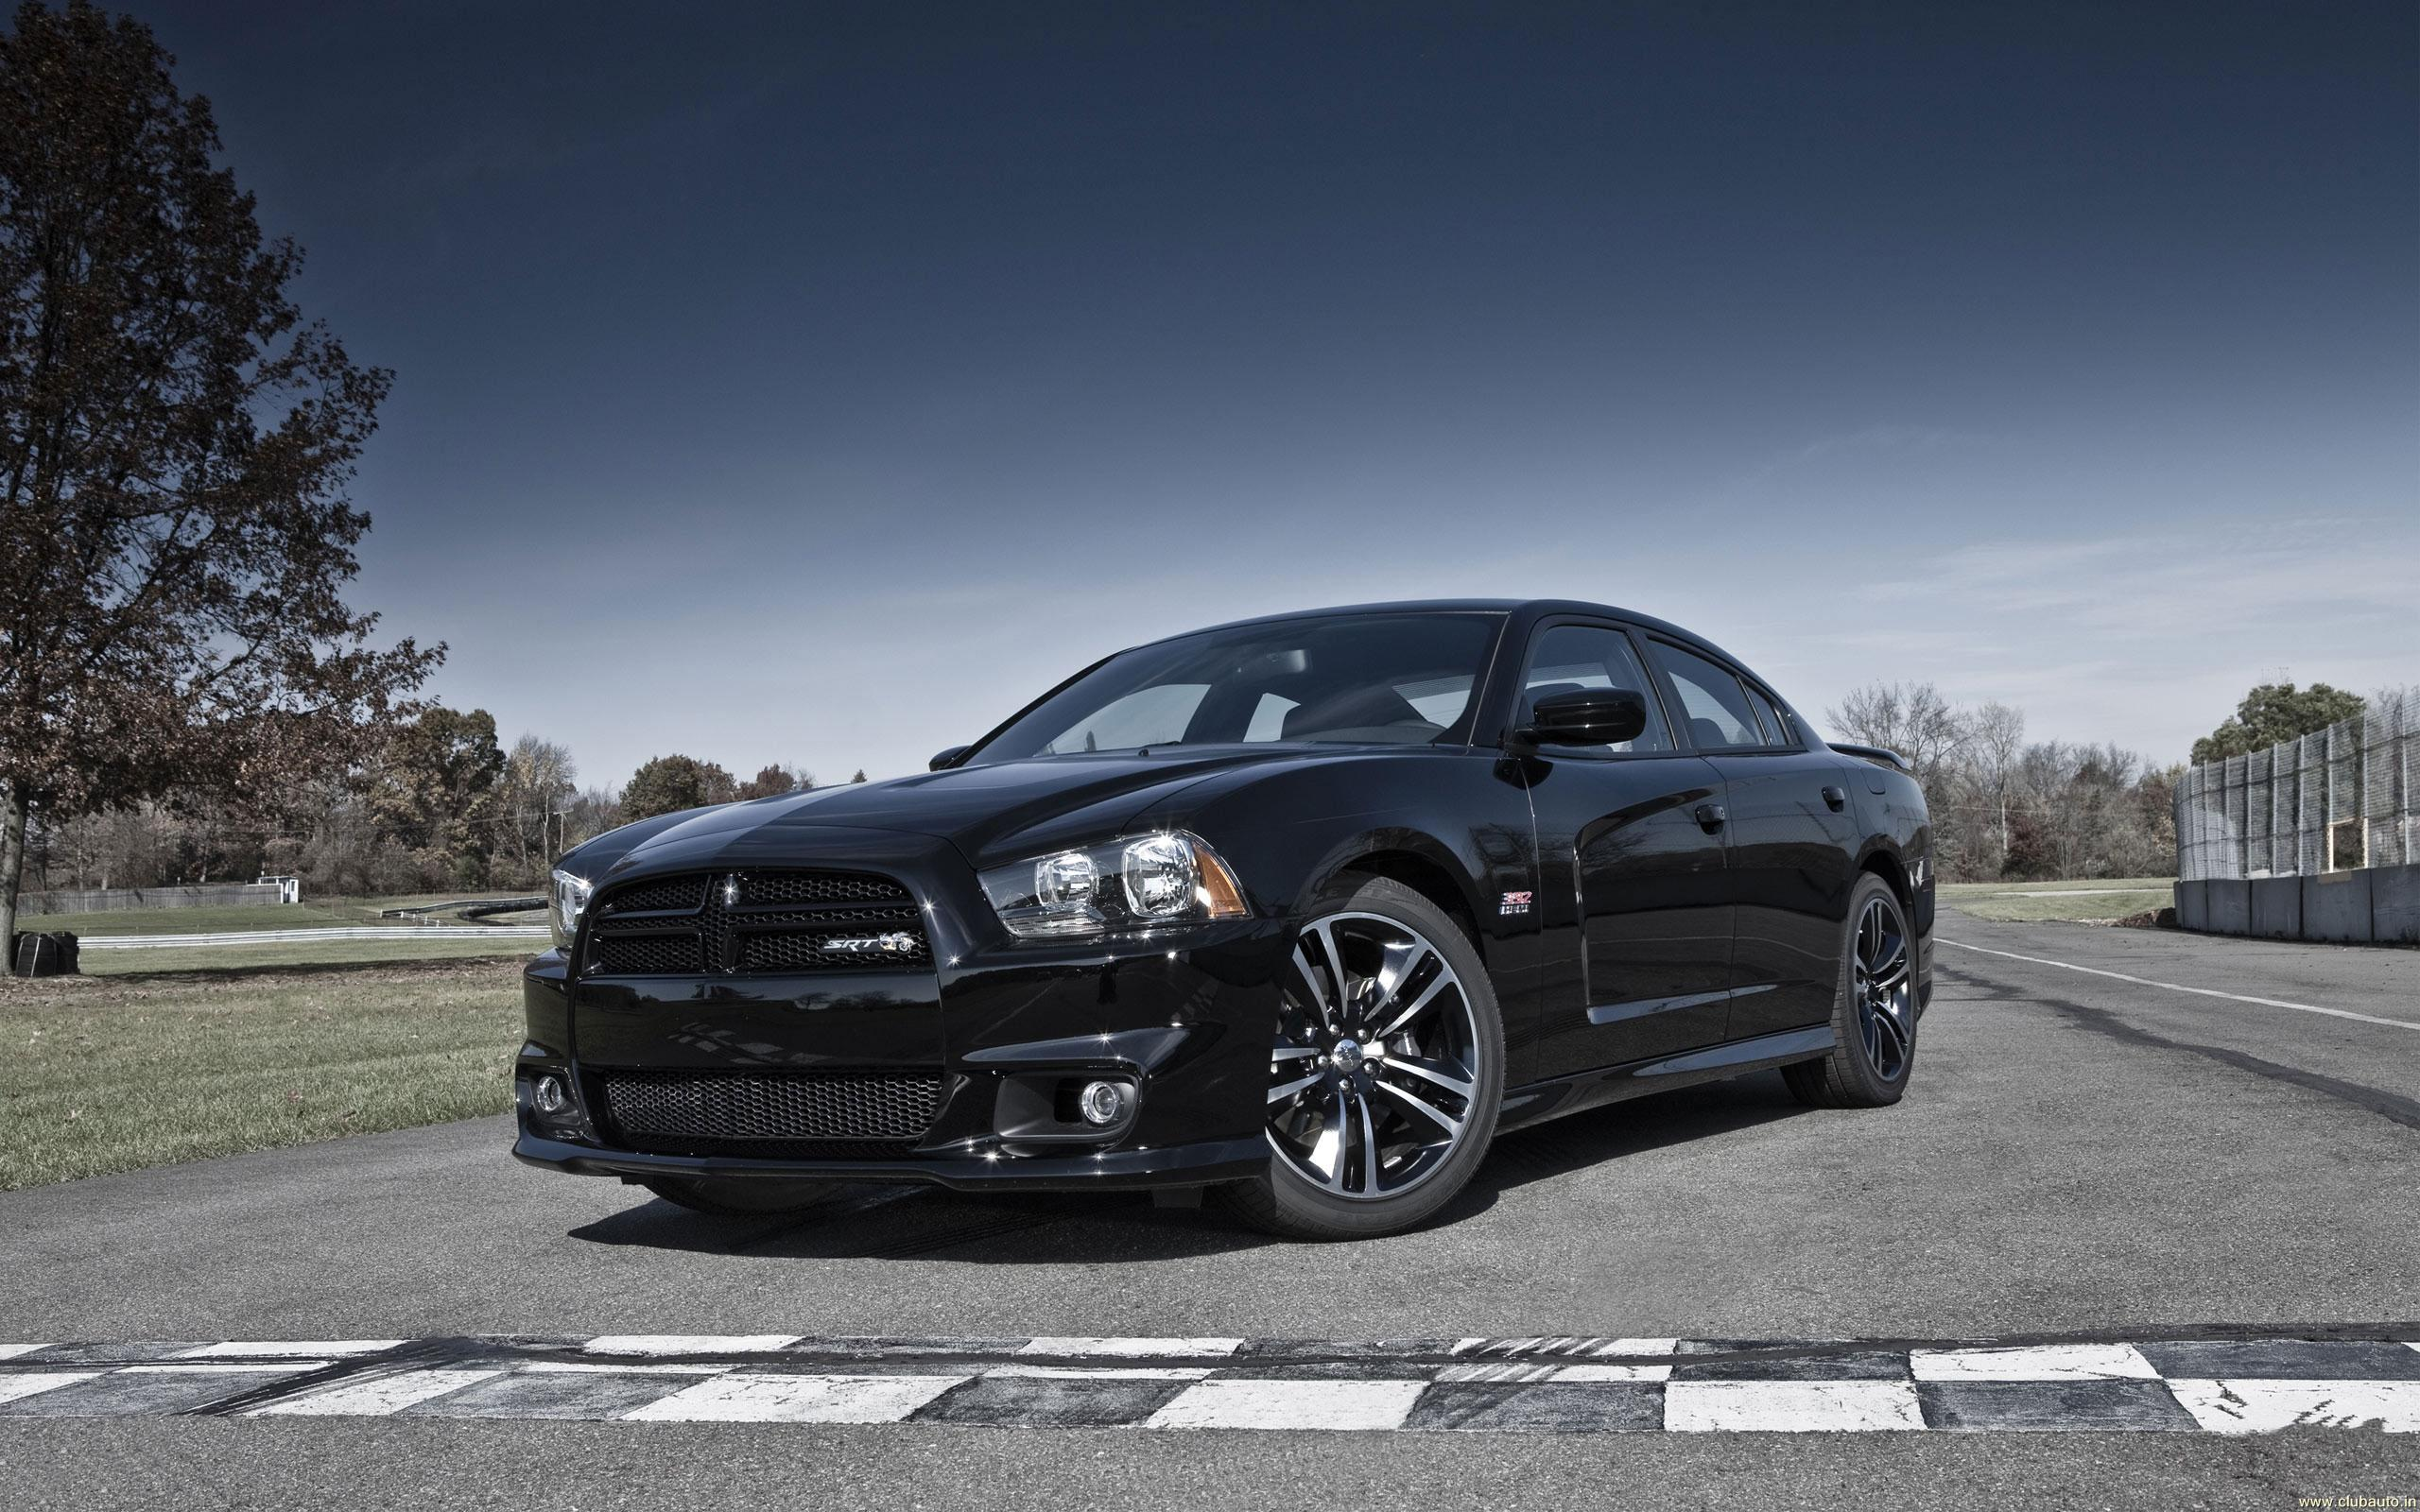 Wallpapers Cars Dodge Charger SRT8 Super Bee Dodge Charger 2560x1600